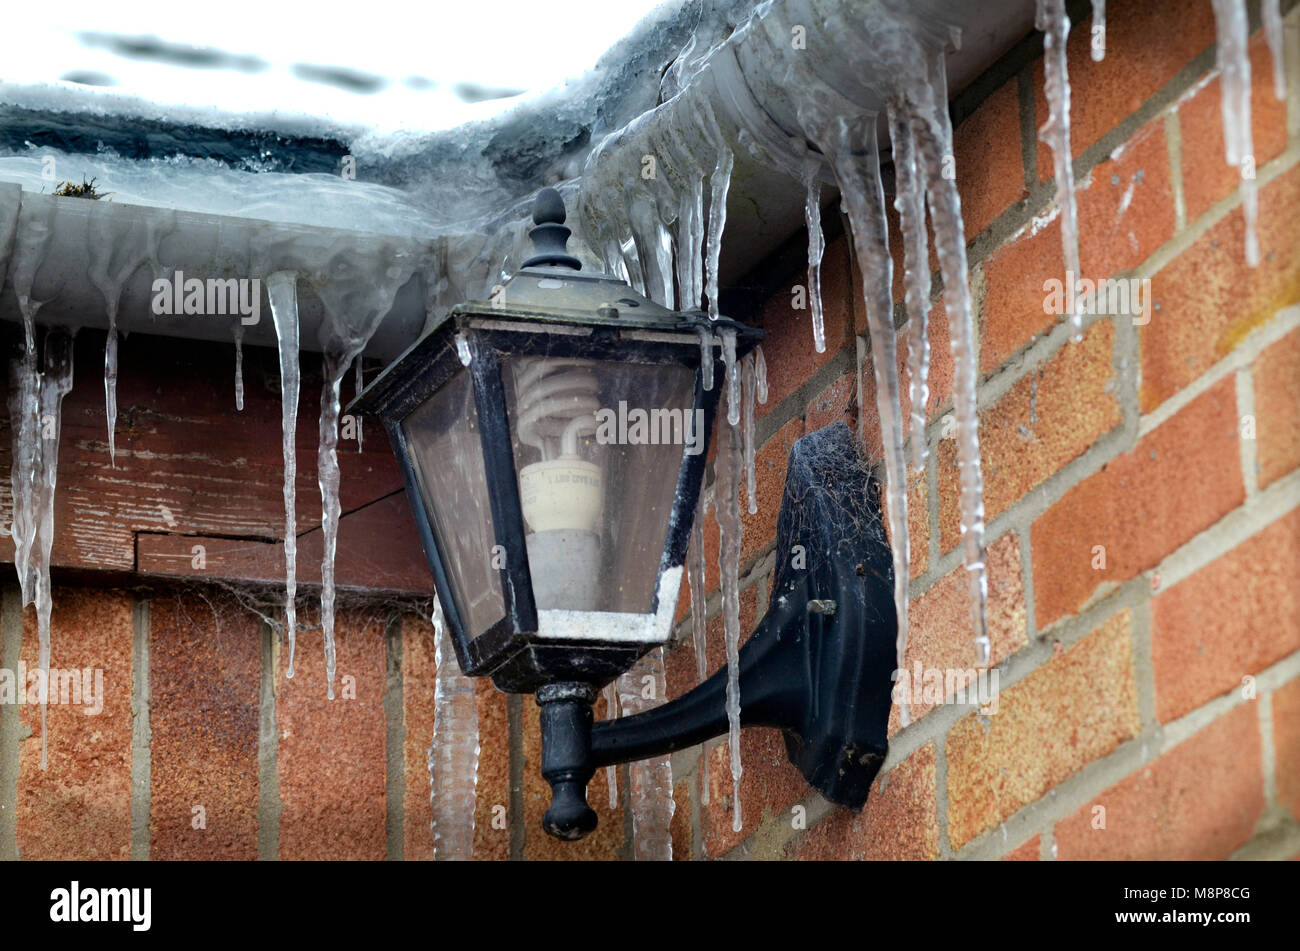 frozen icicles hanging from house gutteering during prolonged cold snap - Stock Image